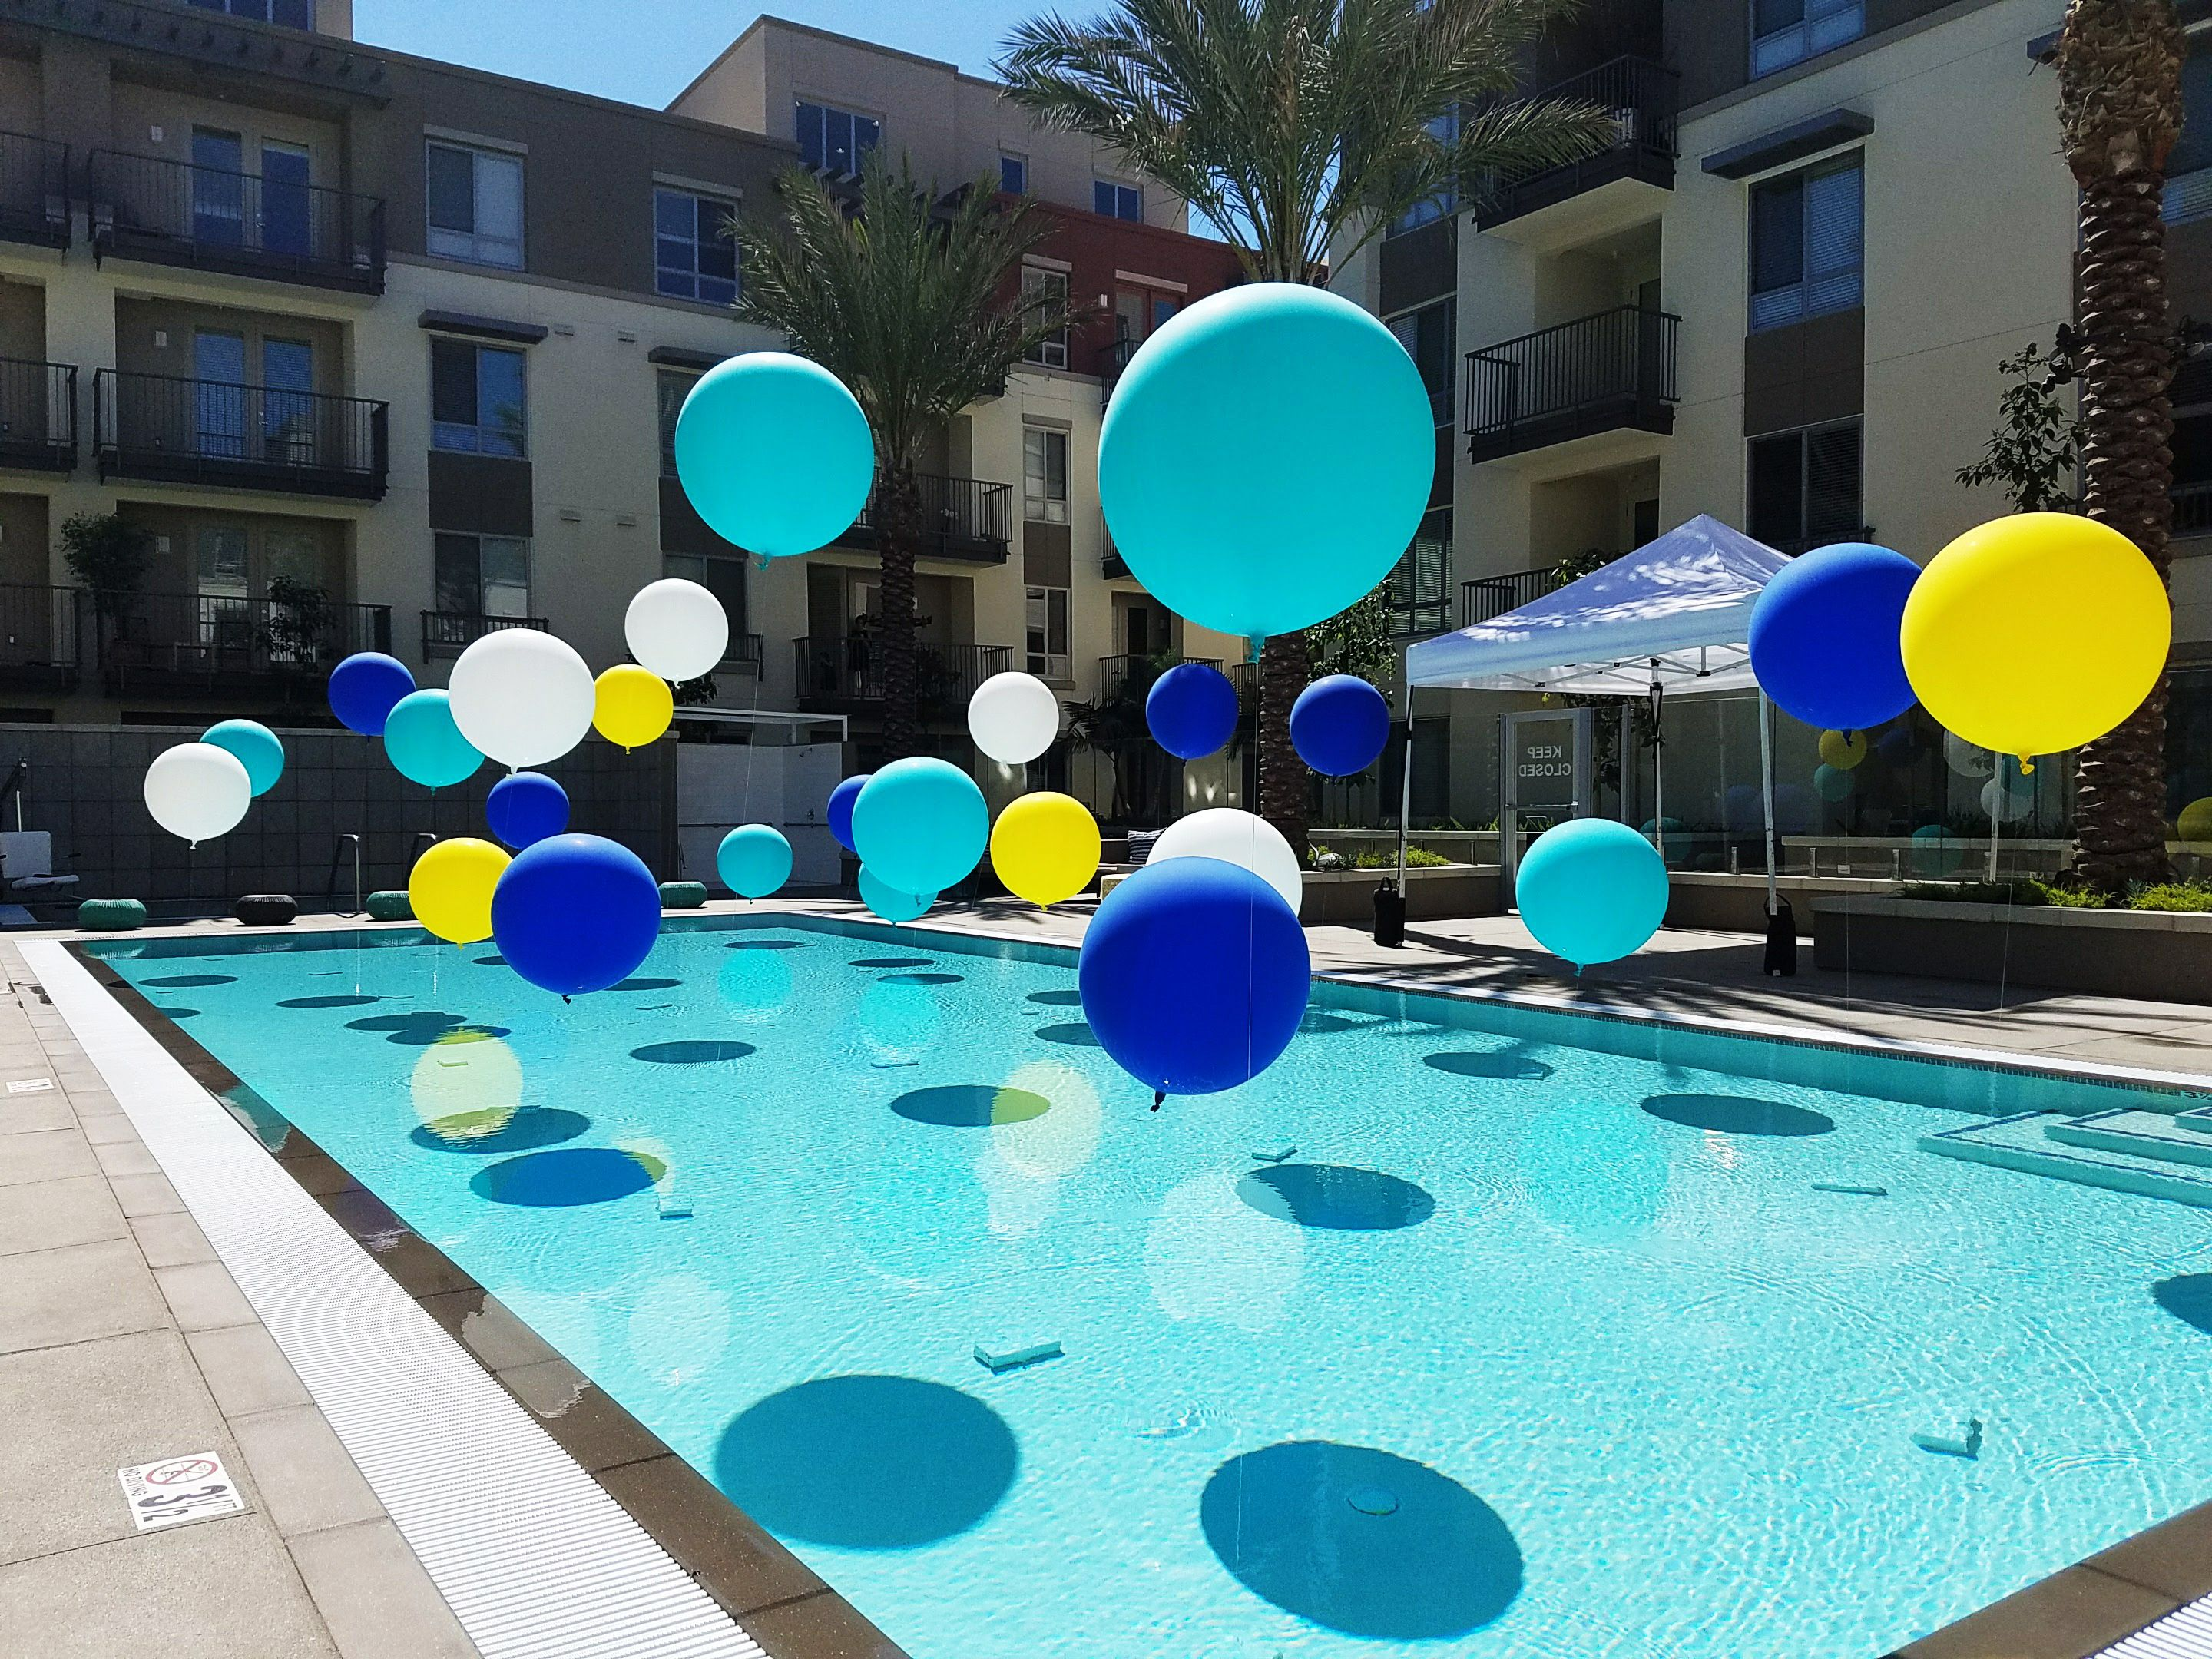 Pool Balloons Summer Party Pool Party Party Ideas Backyard